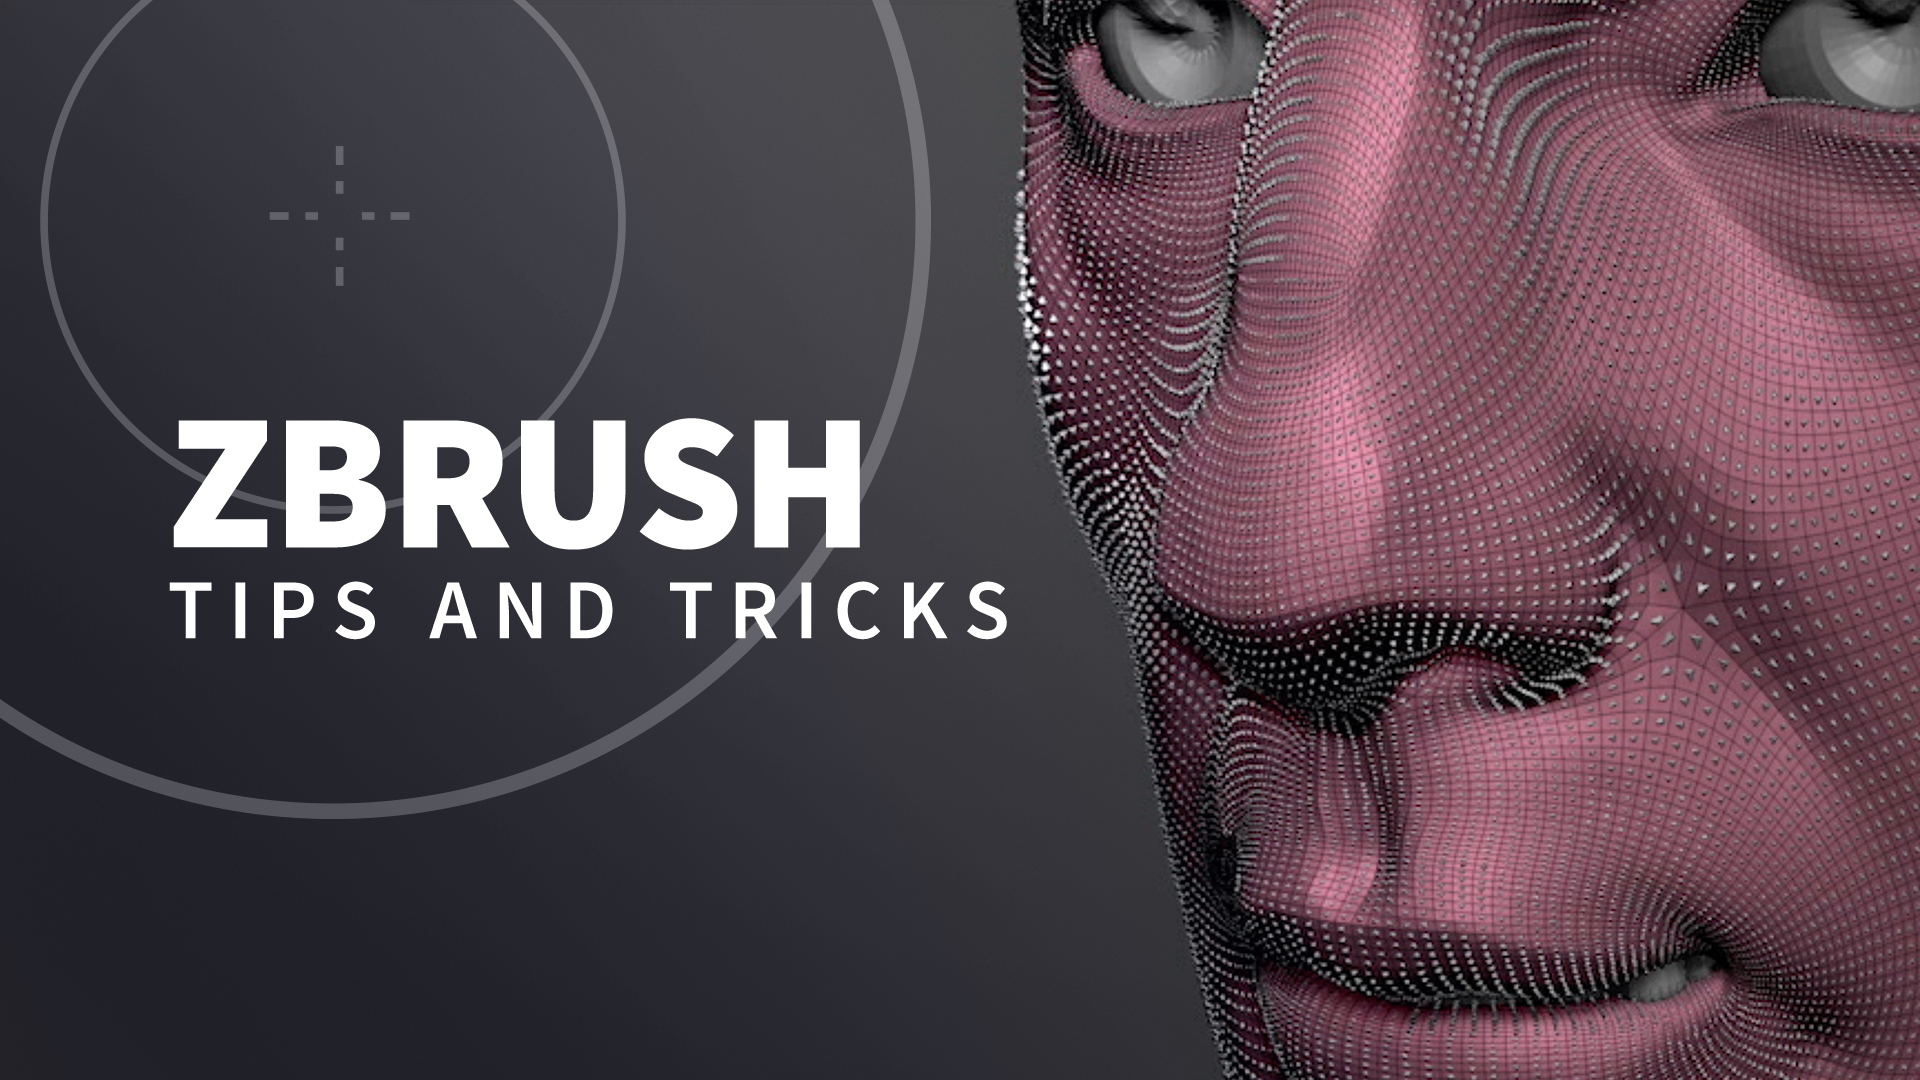 ZBrush Online Courses | LinkedIn Learning, formerly Lynda com